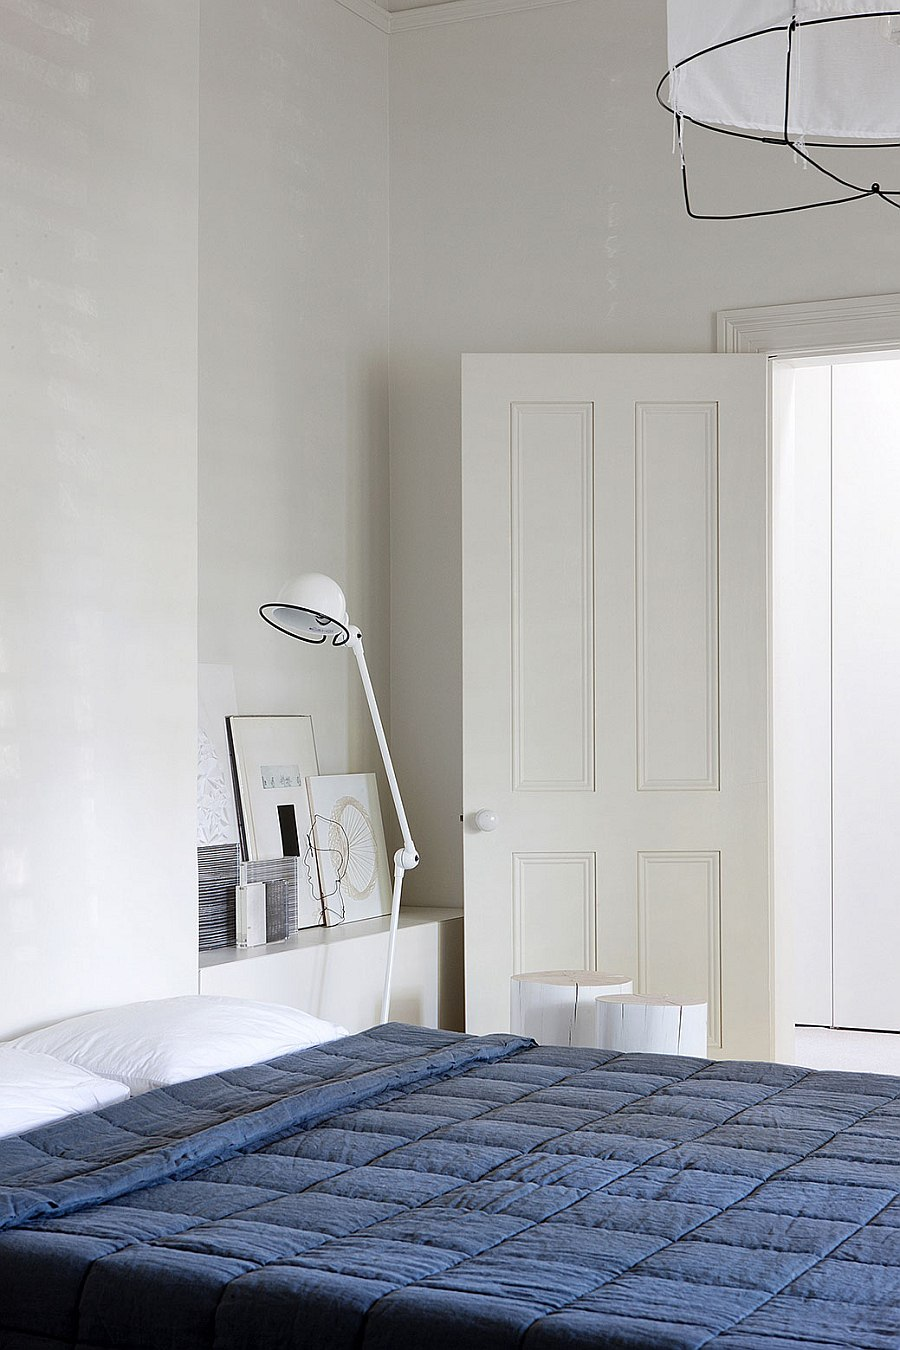 Innovative bedside lighting idea for the small modern bedroom